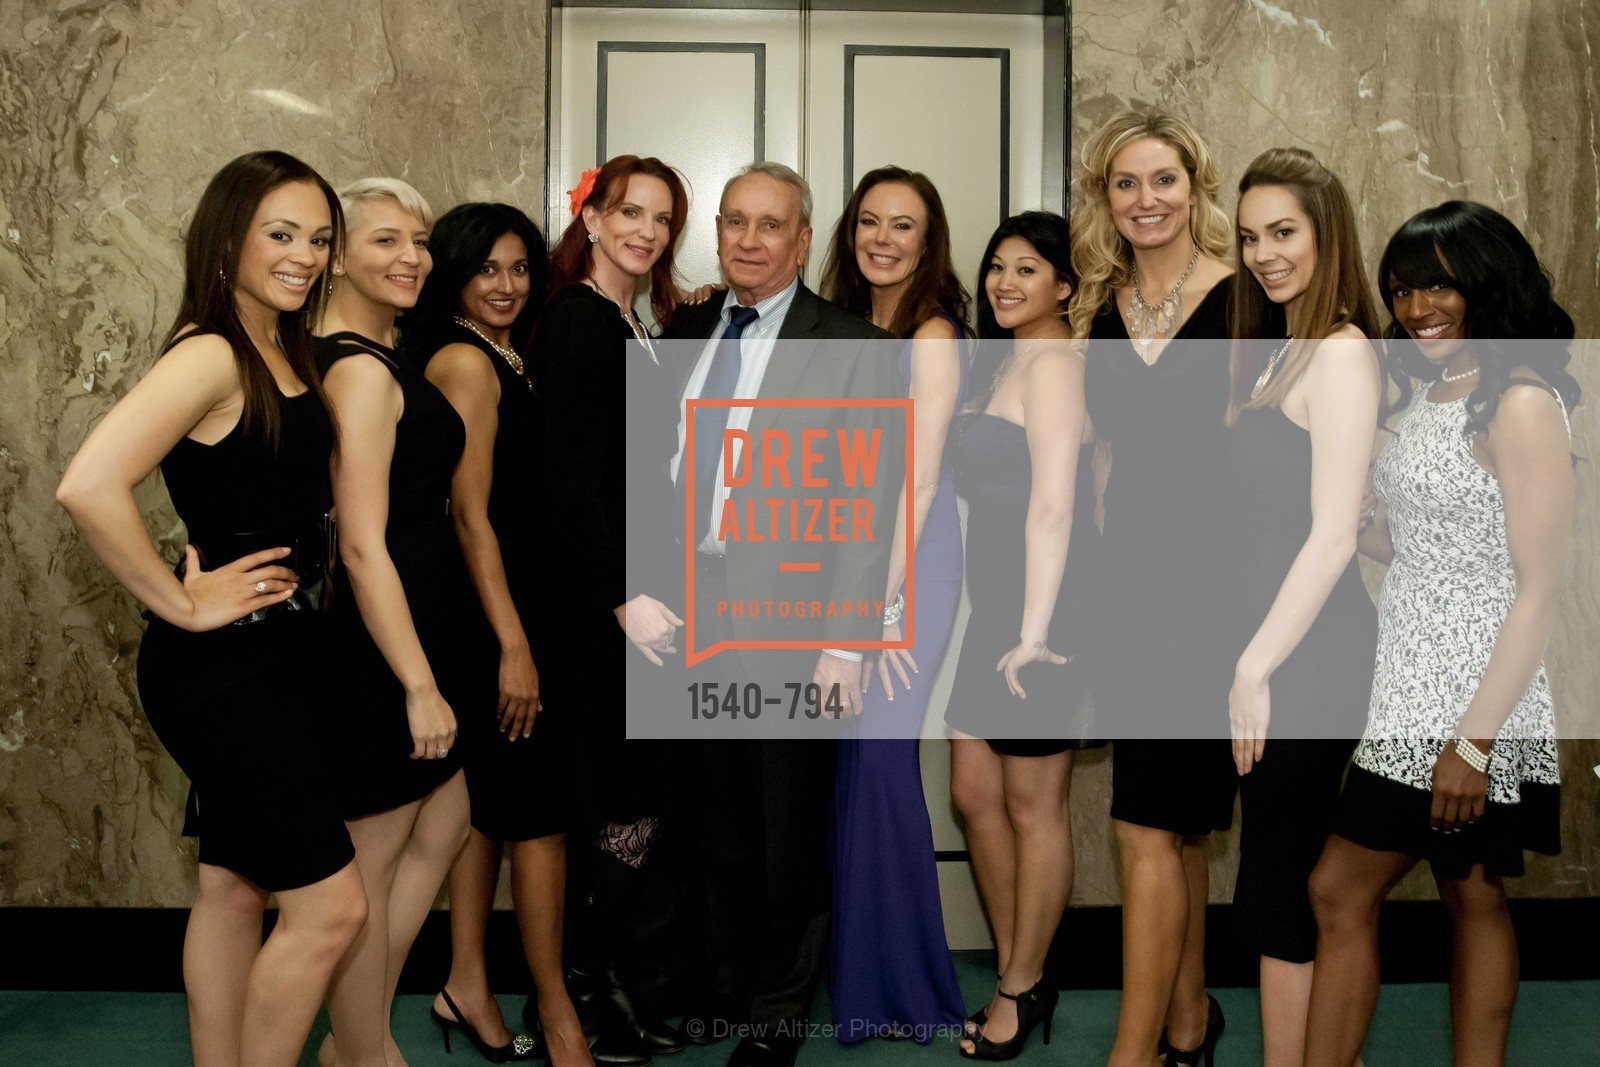 Jessica Robinson, Inessa Samodeeva, Shilpa Vichare, Kelly Ferrante, Patrick Bitter, Margaret Mitchell, Jenny Hernandez, Lisa Szady, Danielle Whitlock, Pernella Sommerville, EPI CENTER MedSpa Anniversary and Launch of REPLETE - Evening Celebration, US, April 21st, 2015,Drew Altizer, Drew Altizer Photography, full-service agency, private events, San Francisco photographer, photographer california